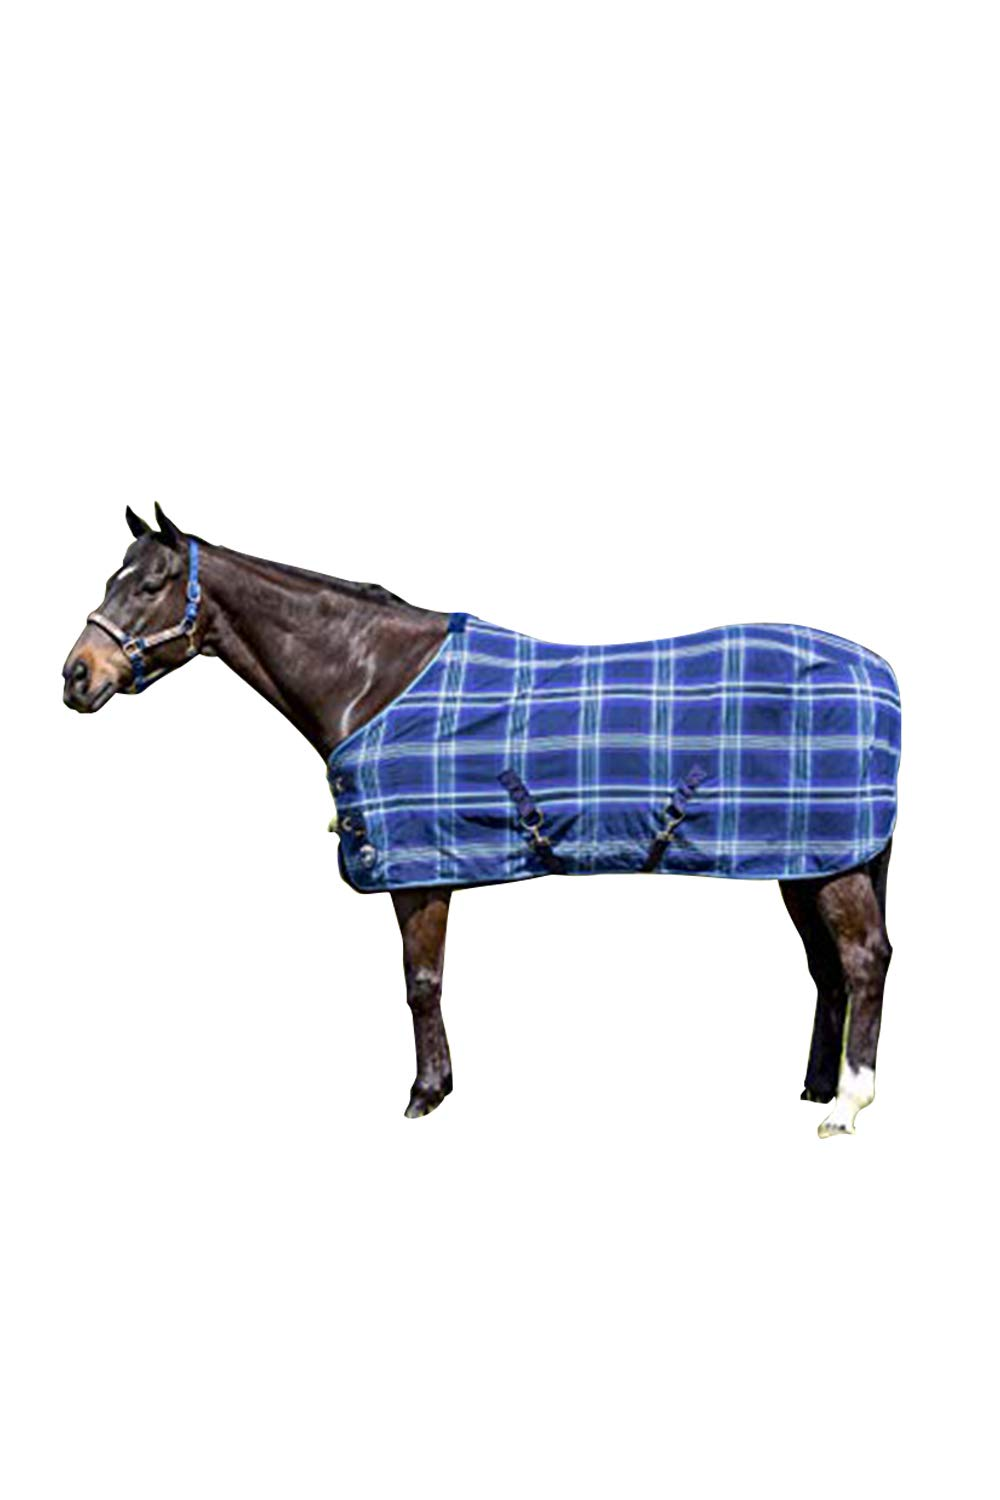 Kensington Products Poly Cotton Horse Blanket - Lightweight Breathable Equine Stable Day Sheet (78, 181- Kentucky Blue) by Kensington Protective Products